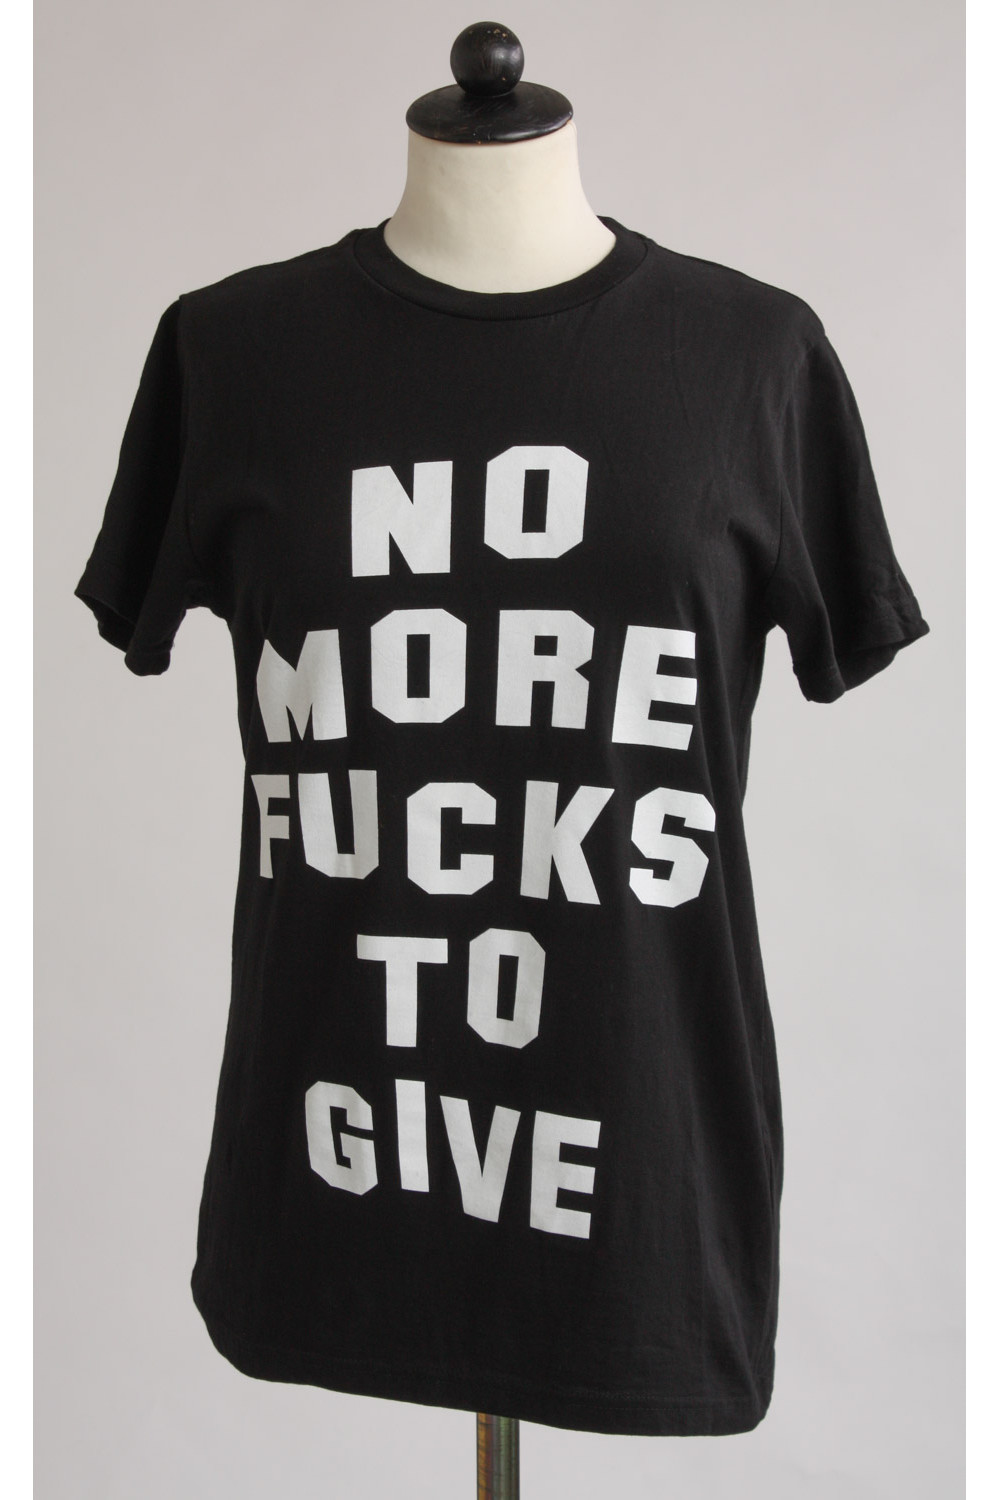 """T-shirt med tryck """"No more fucks to give!"""", stl S"""